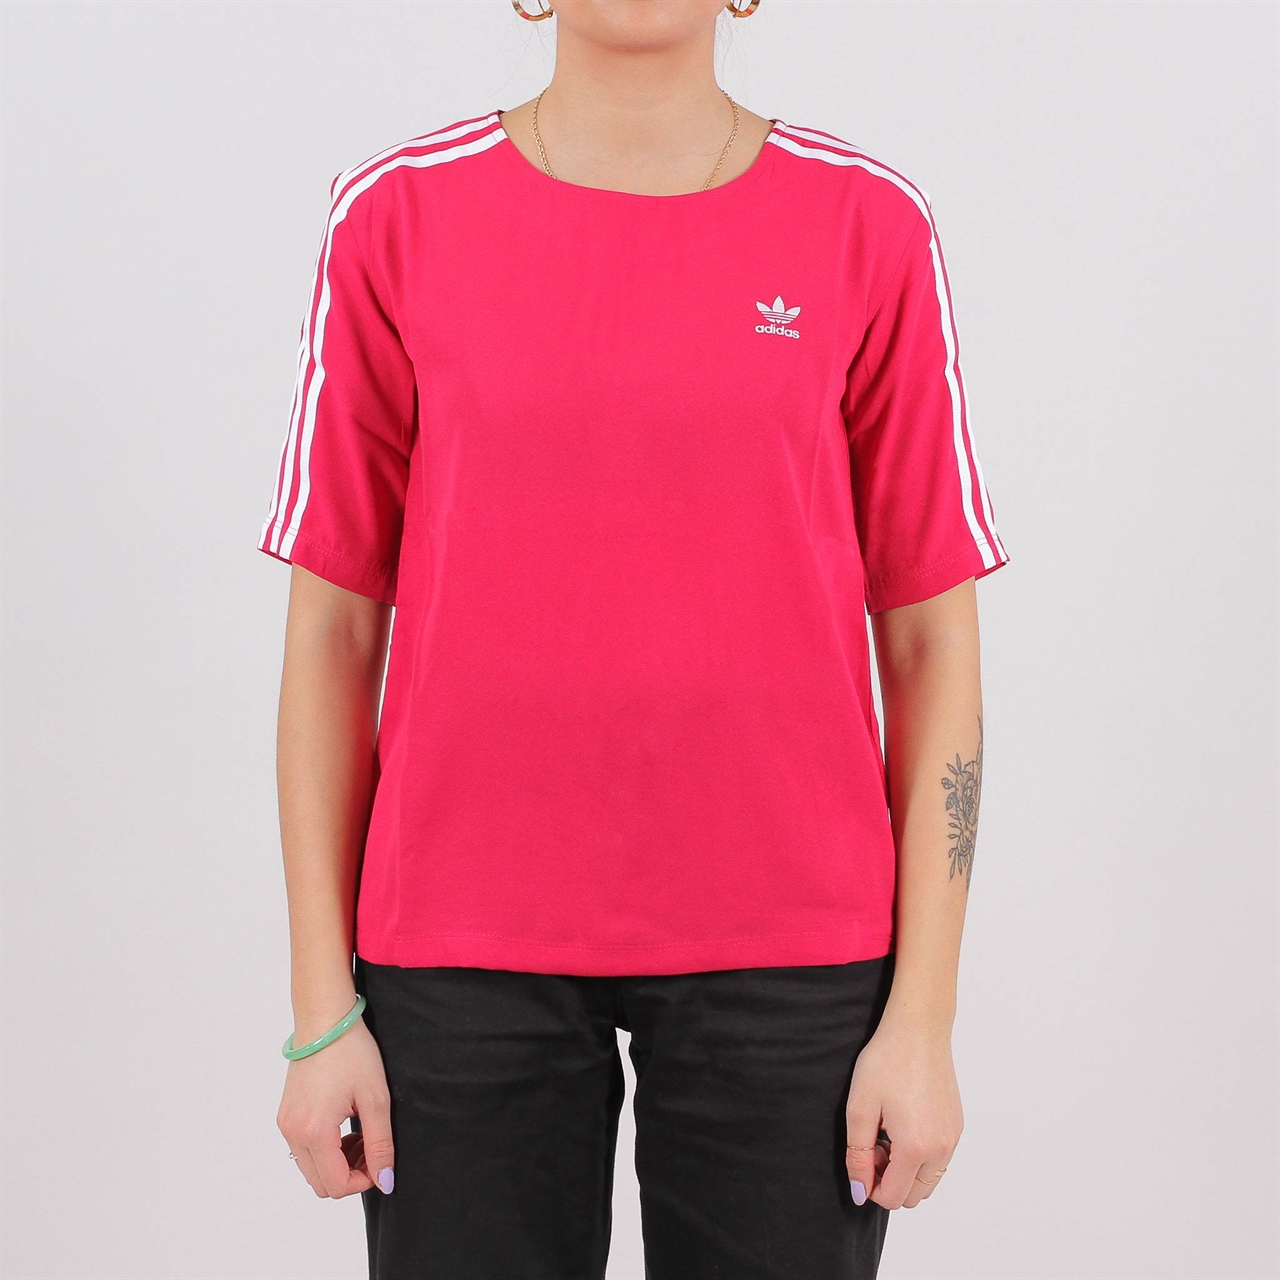 Shelta - Adidas Originals Womens 3 Stripes Tee Pink (DV0853)